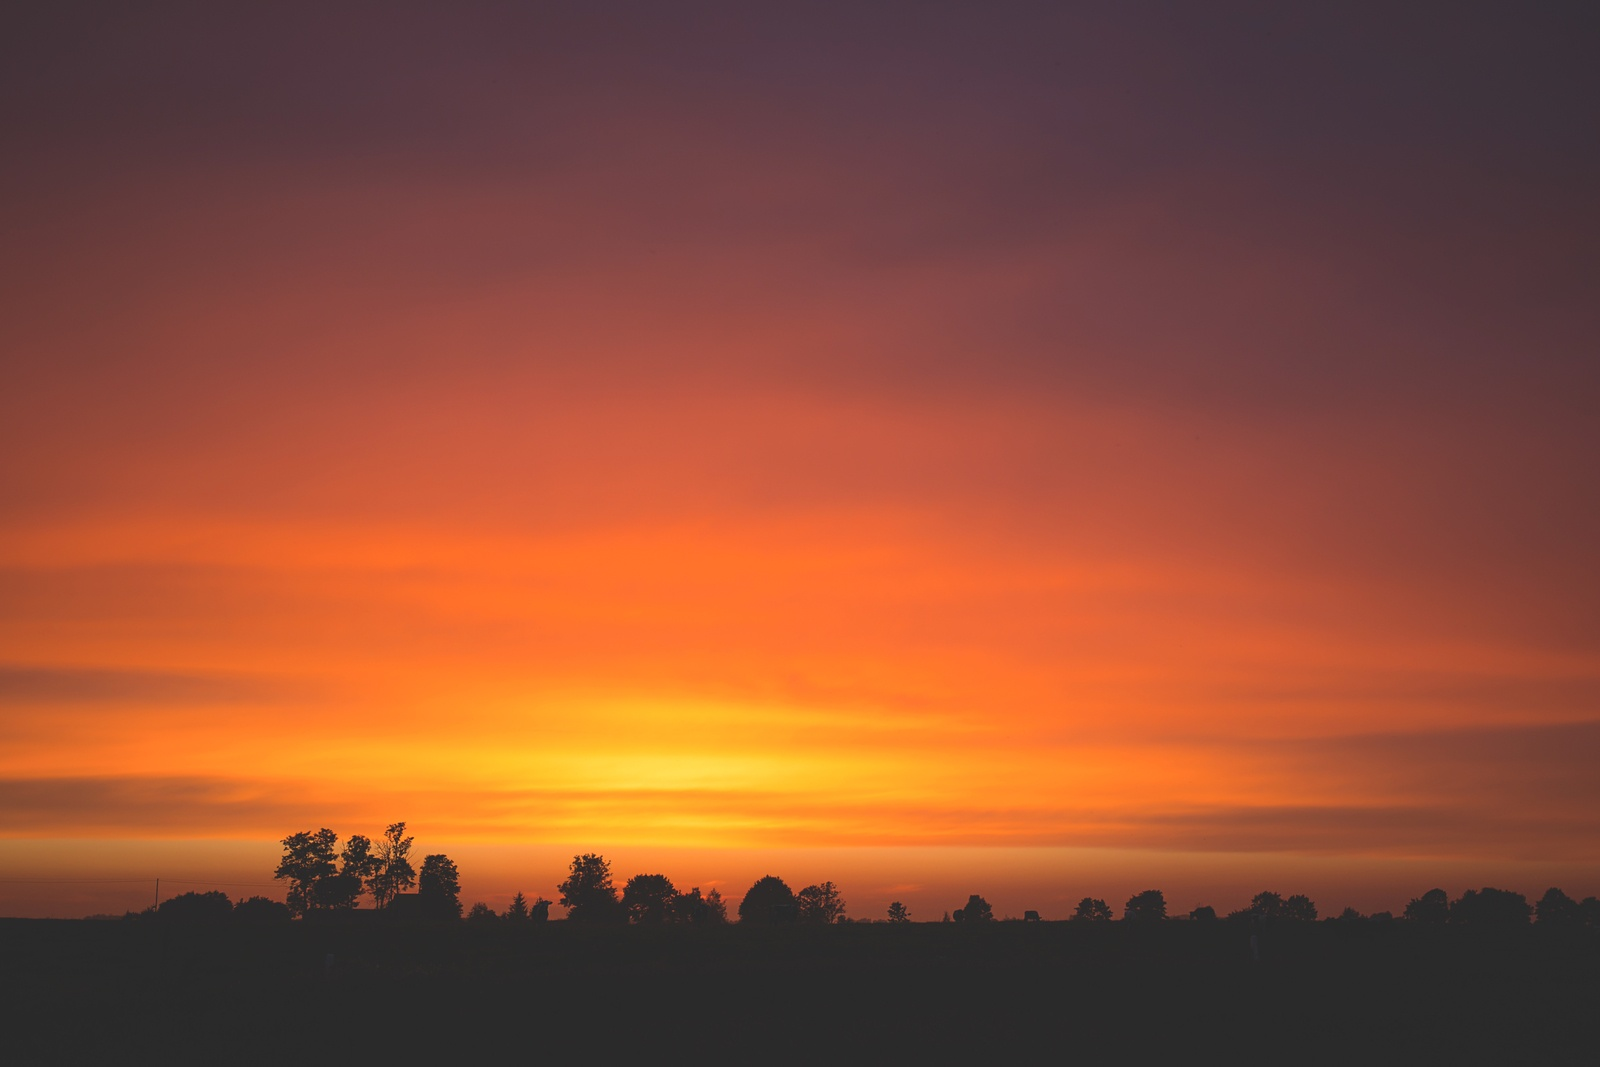 Silhouette of Trees by Freestocks